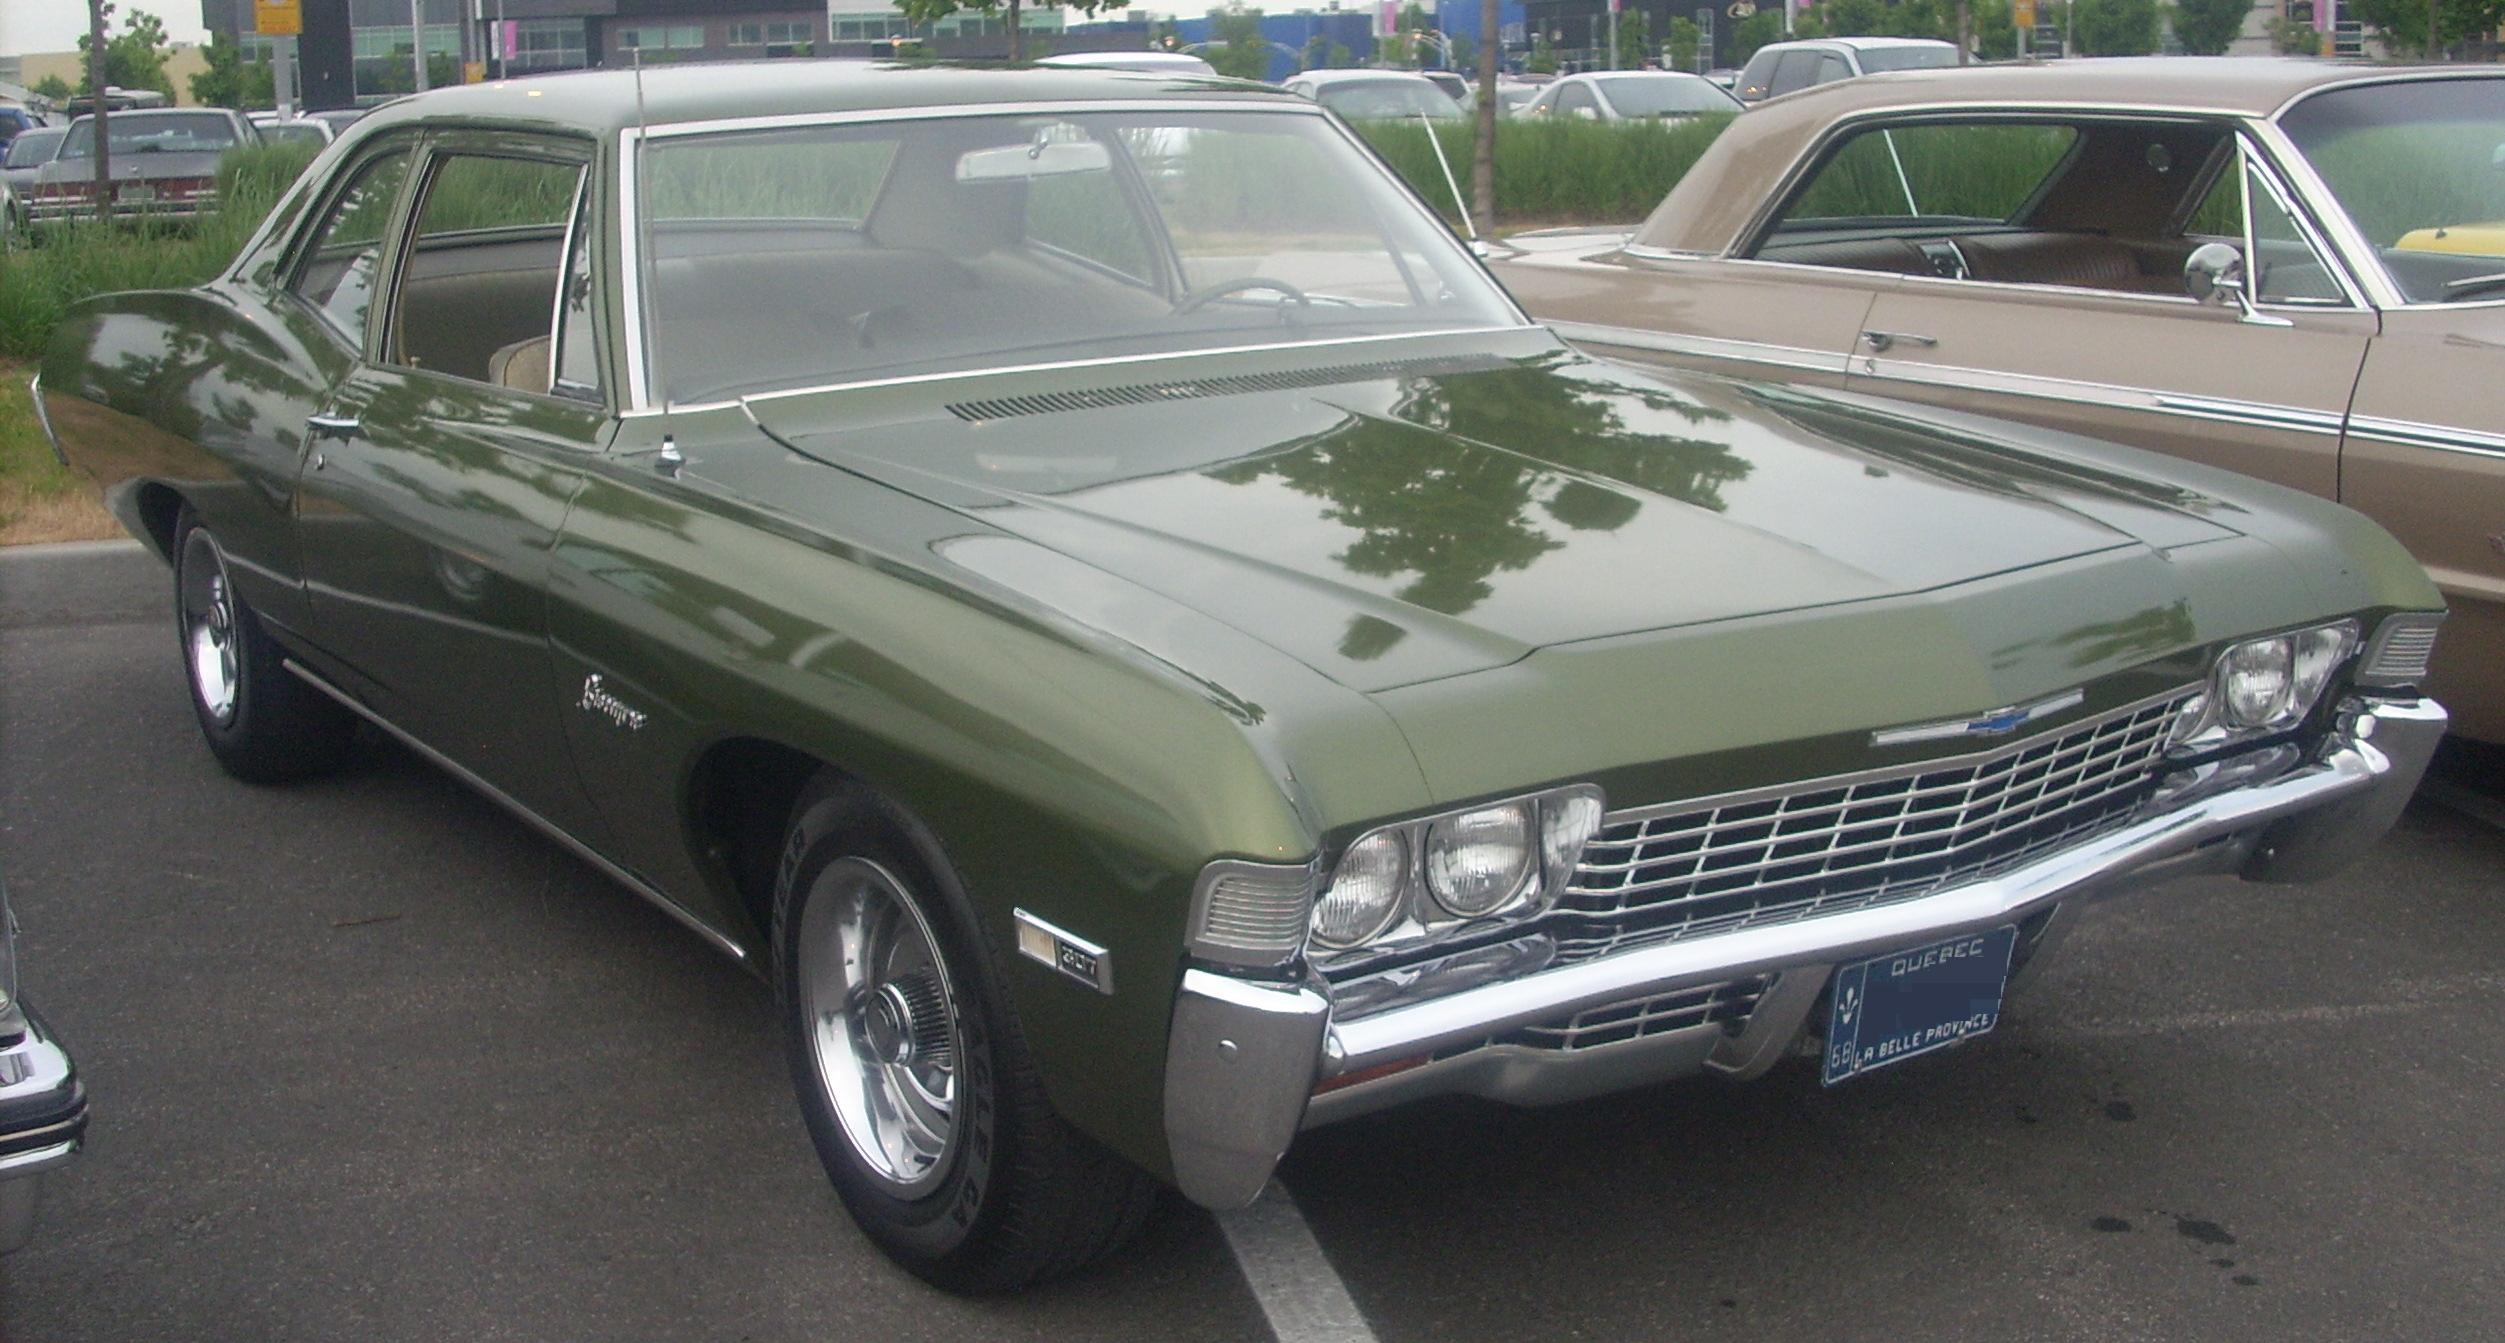 File:'68 Chevrolet Biscayne Coupe (Centropolis Laval '10).jpg ...